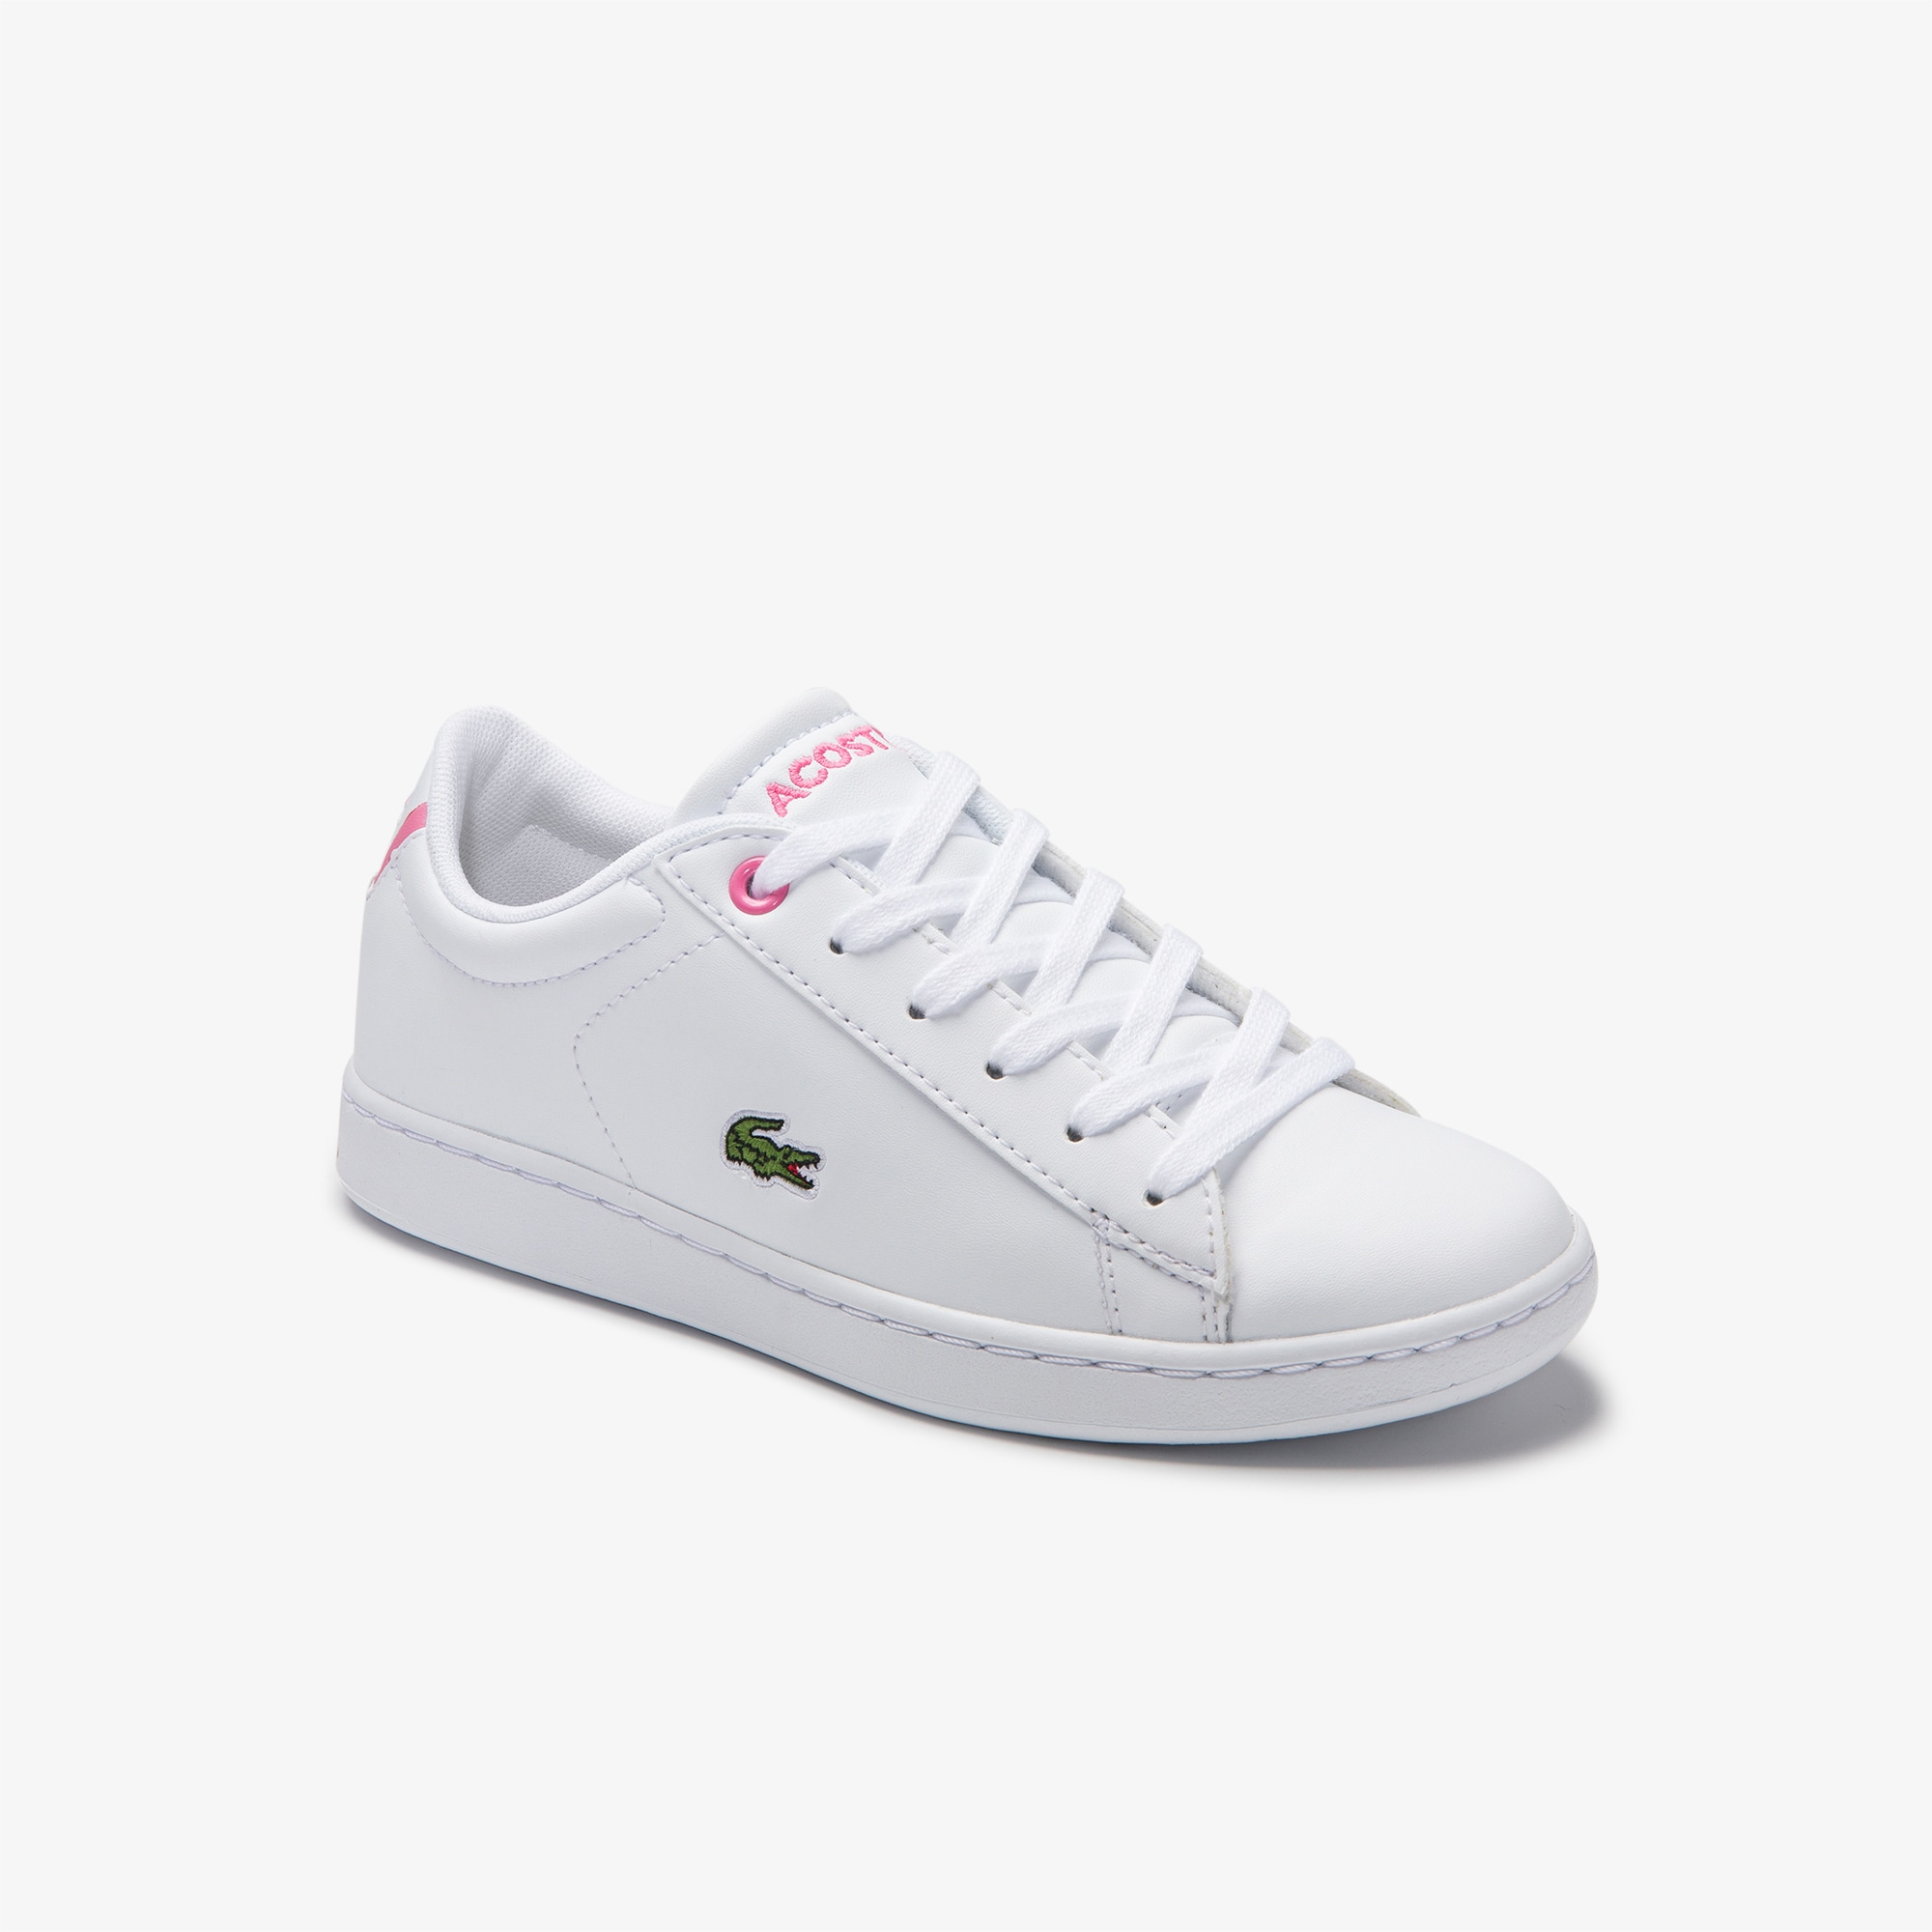 Kinder-Sneakers CARNABY EVO aus Synthetik